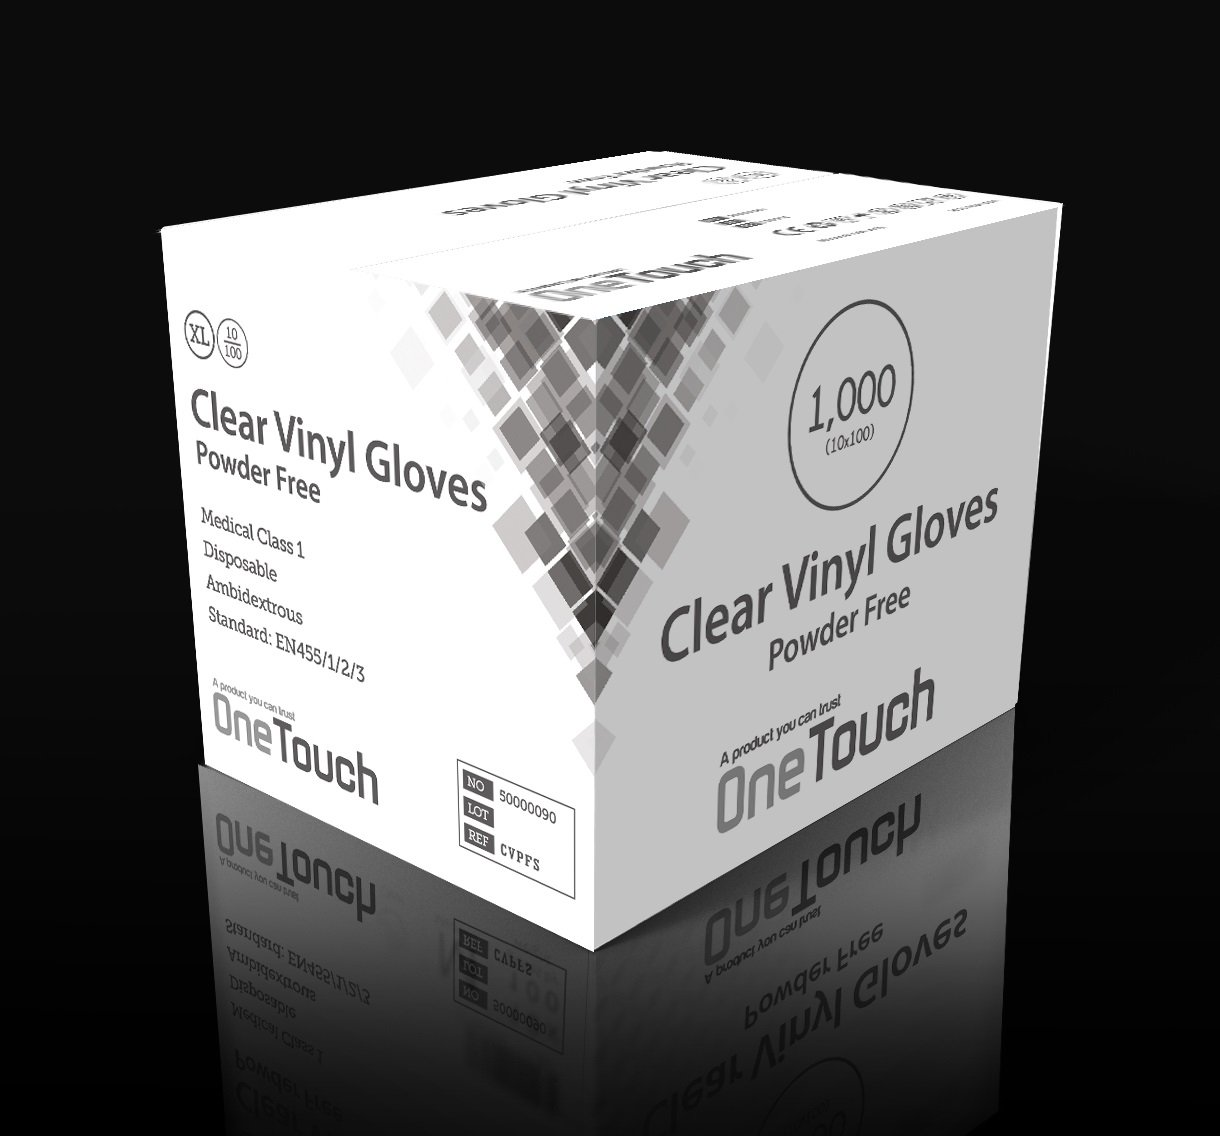 Clear Vinyl, Small 1000 x Powder Free Clear Vinyl Blue Vinyl Examination Gloves Latex Free Multi-purpose Gloves